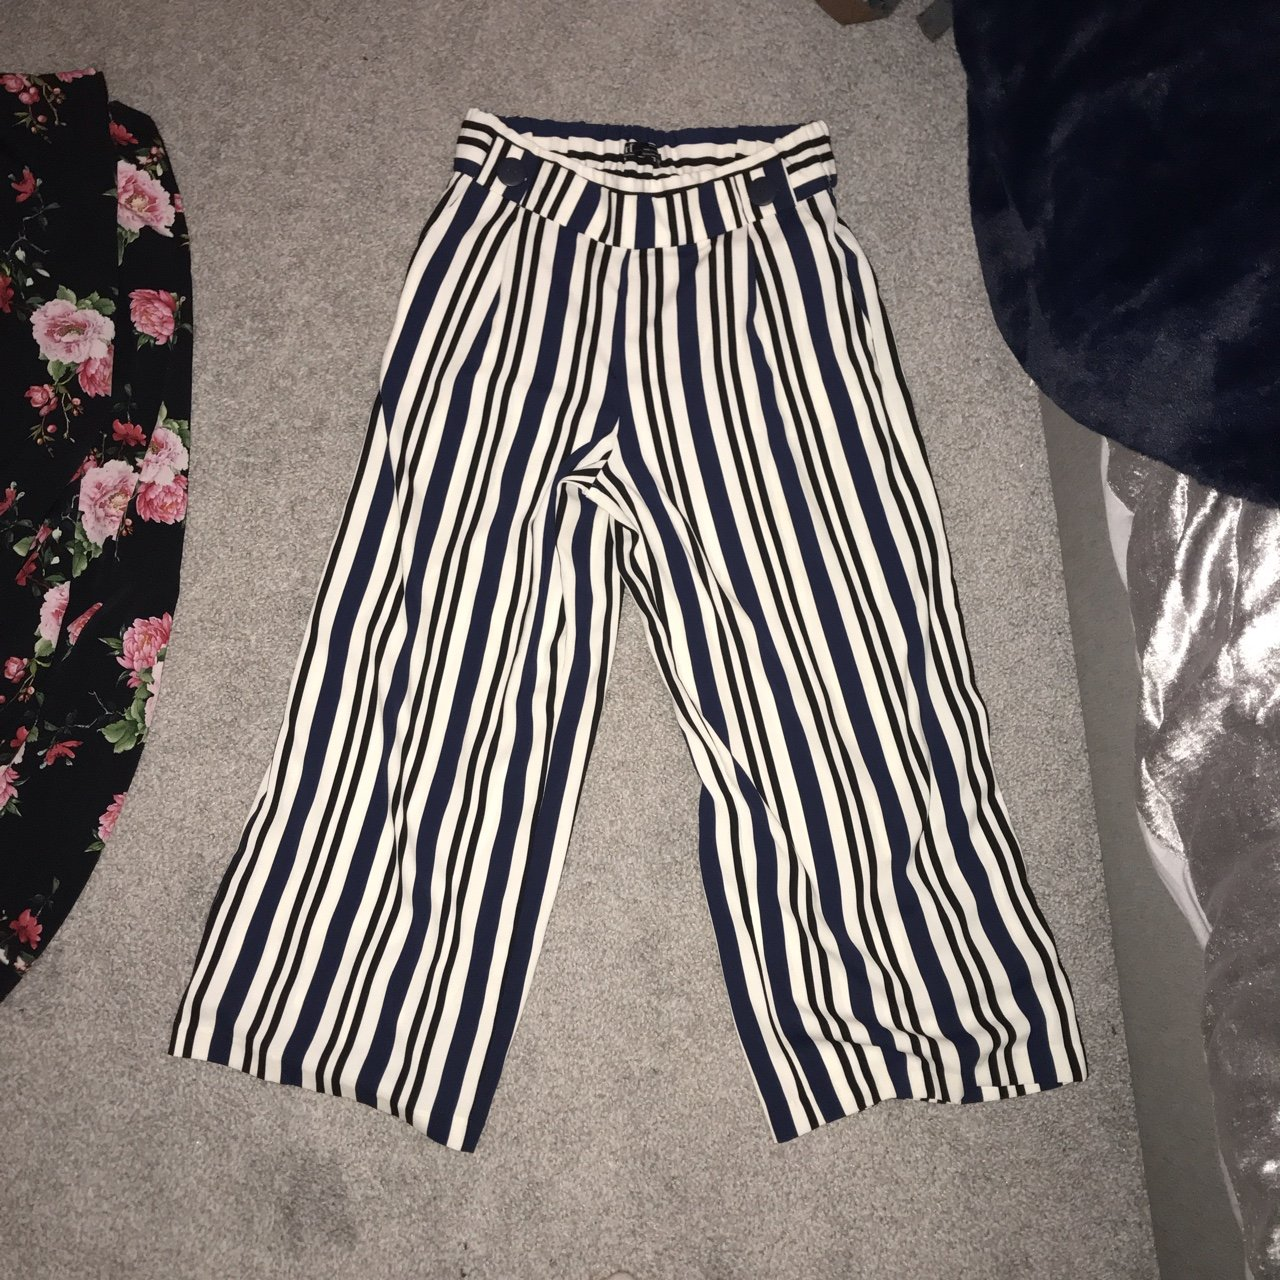 4afb9ce4f2e1 Pinstriped Navy white and black